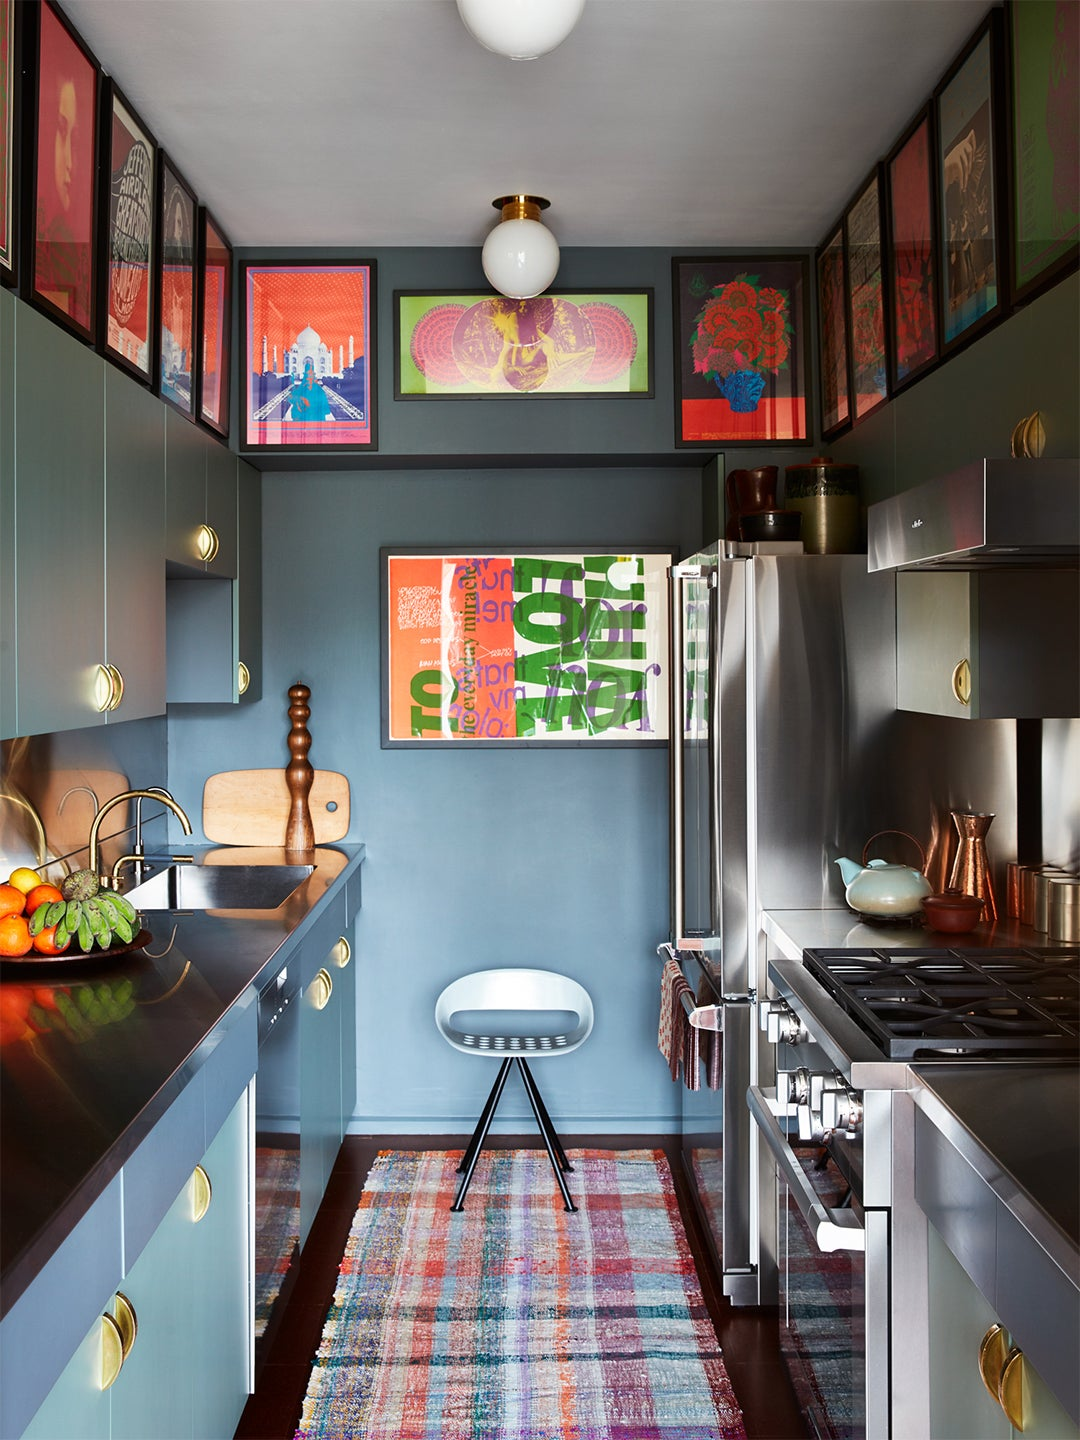 blue kitchen with artwork on walls